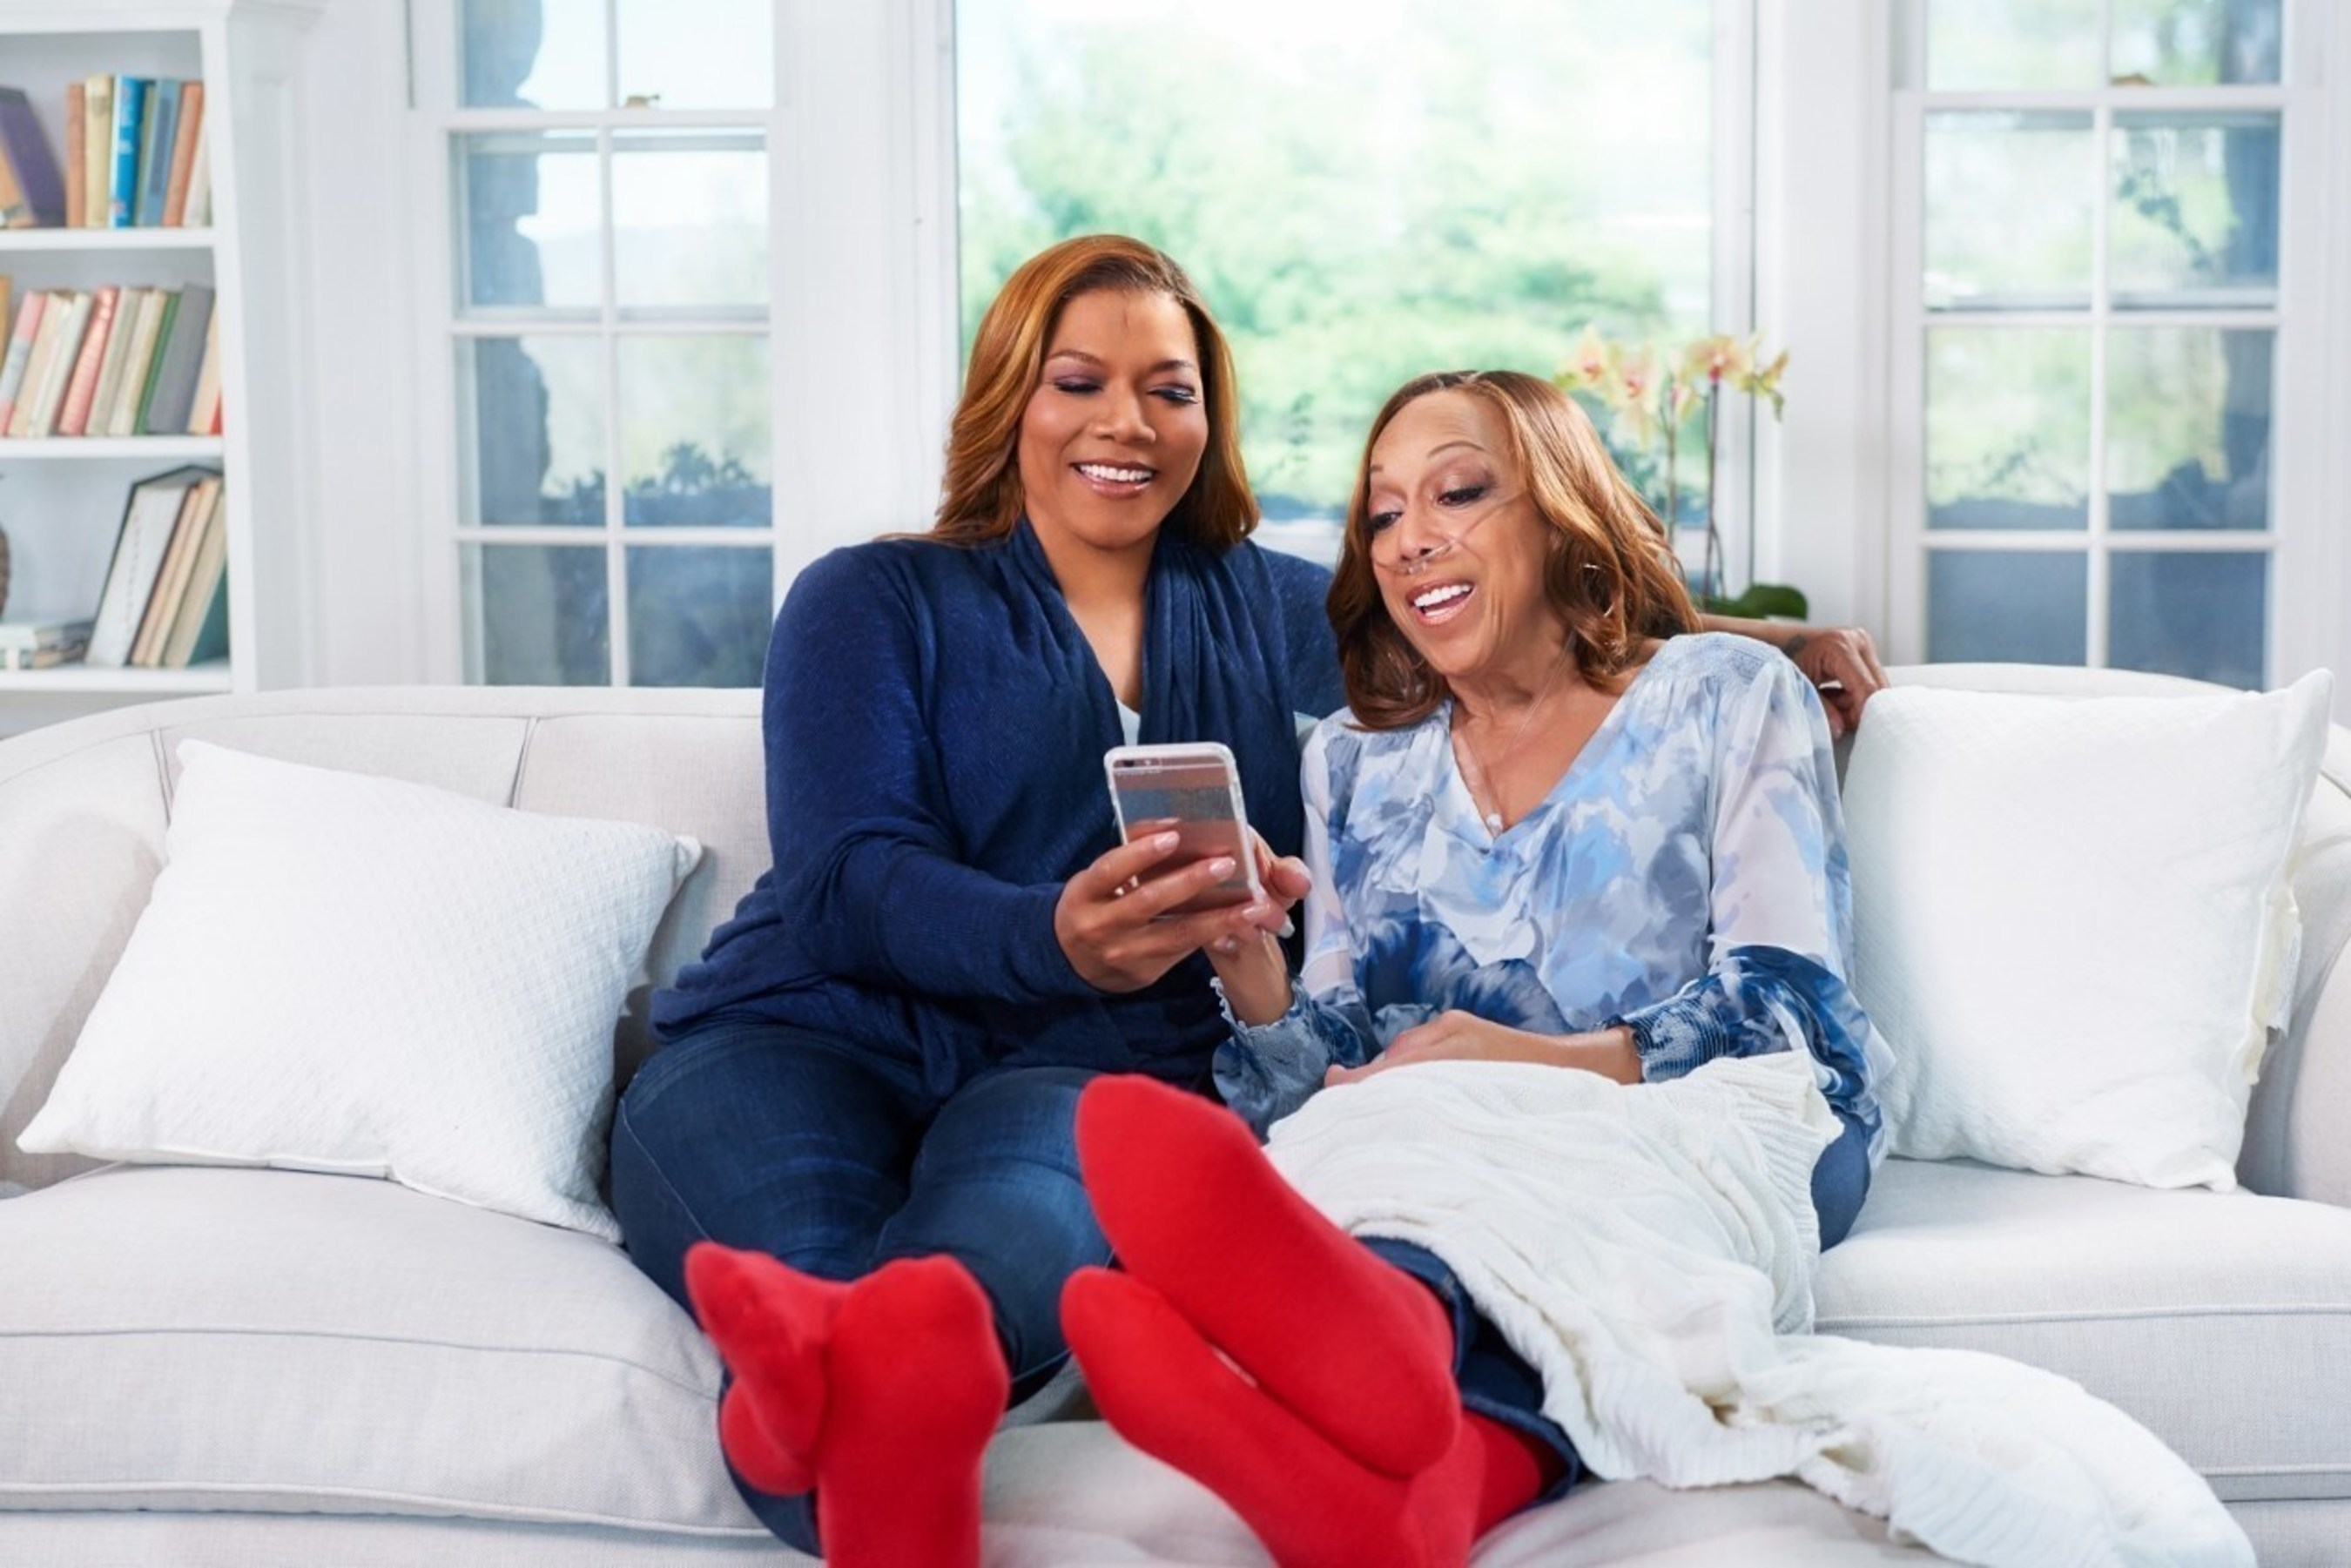 Queen Latifah and her mother, Rita Owens, join the American Heart Association's Red Step Challenge to raise awareness about heart failure